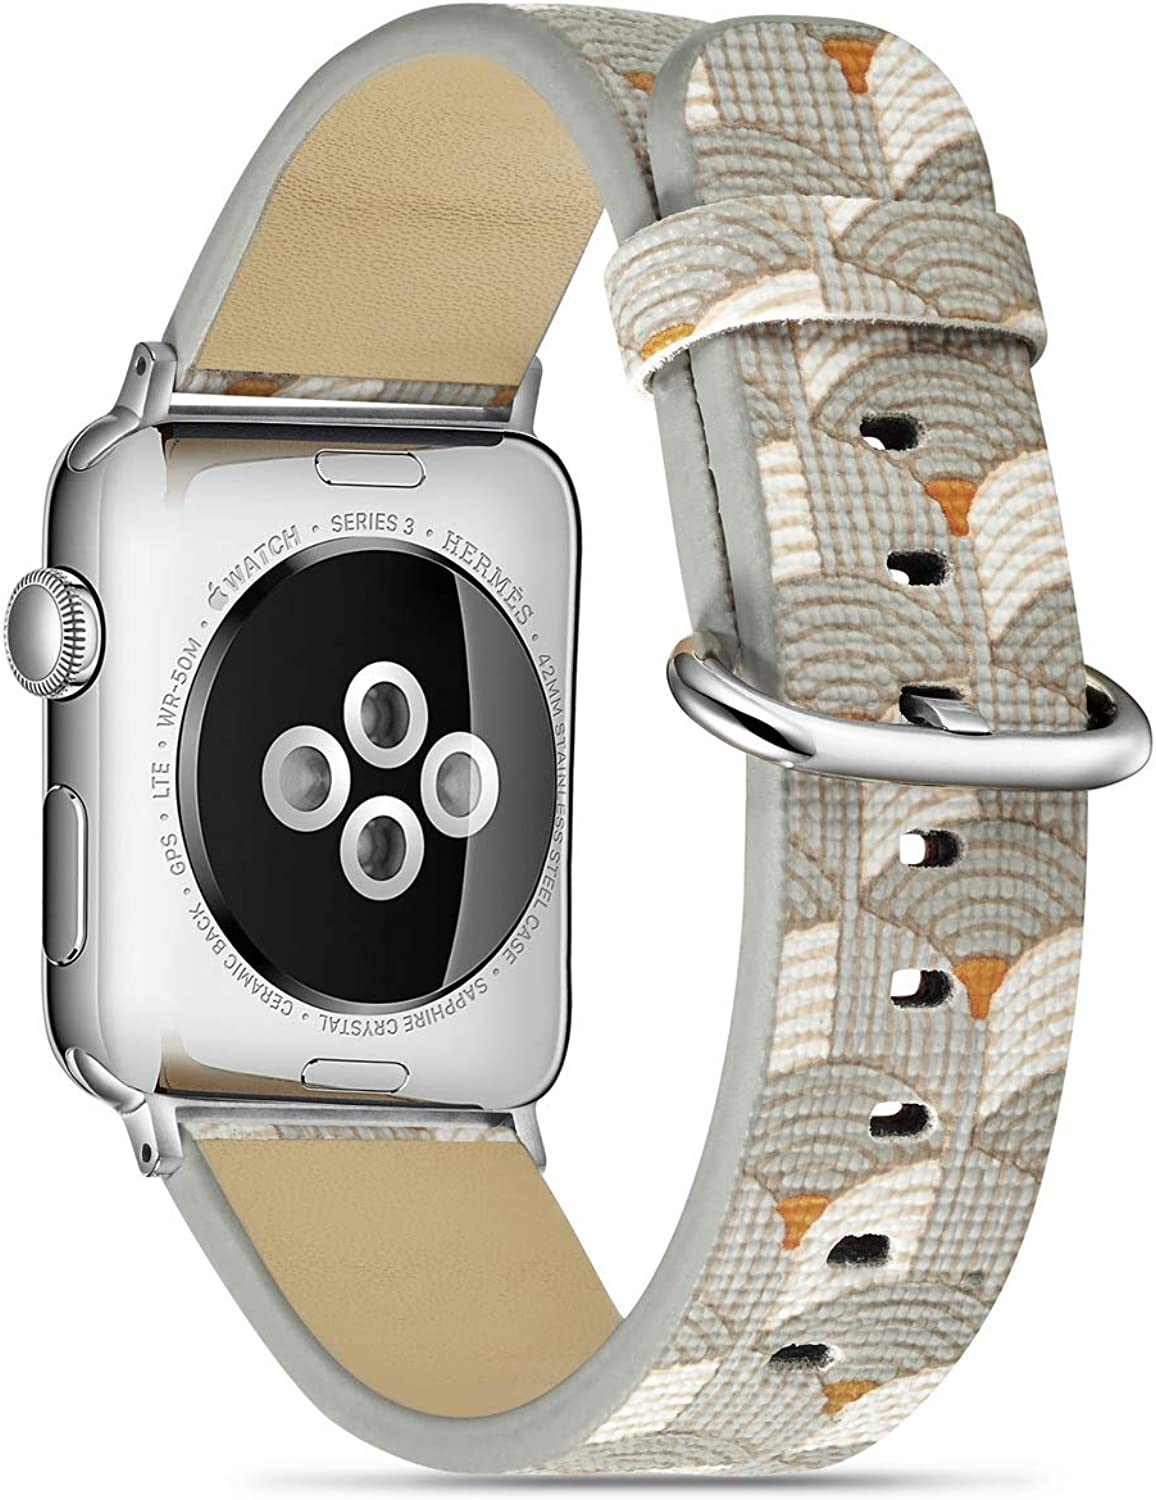 MeShow 44mm 42mm Wave Style Strap Wrist Band Watch Band with Silver Metal Adapter Compatible for Apple Watch Series SE 6 5 4 3 2 1(Not fit for 38mm/40mm Apple Watch)